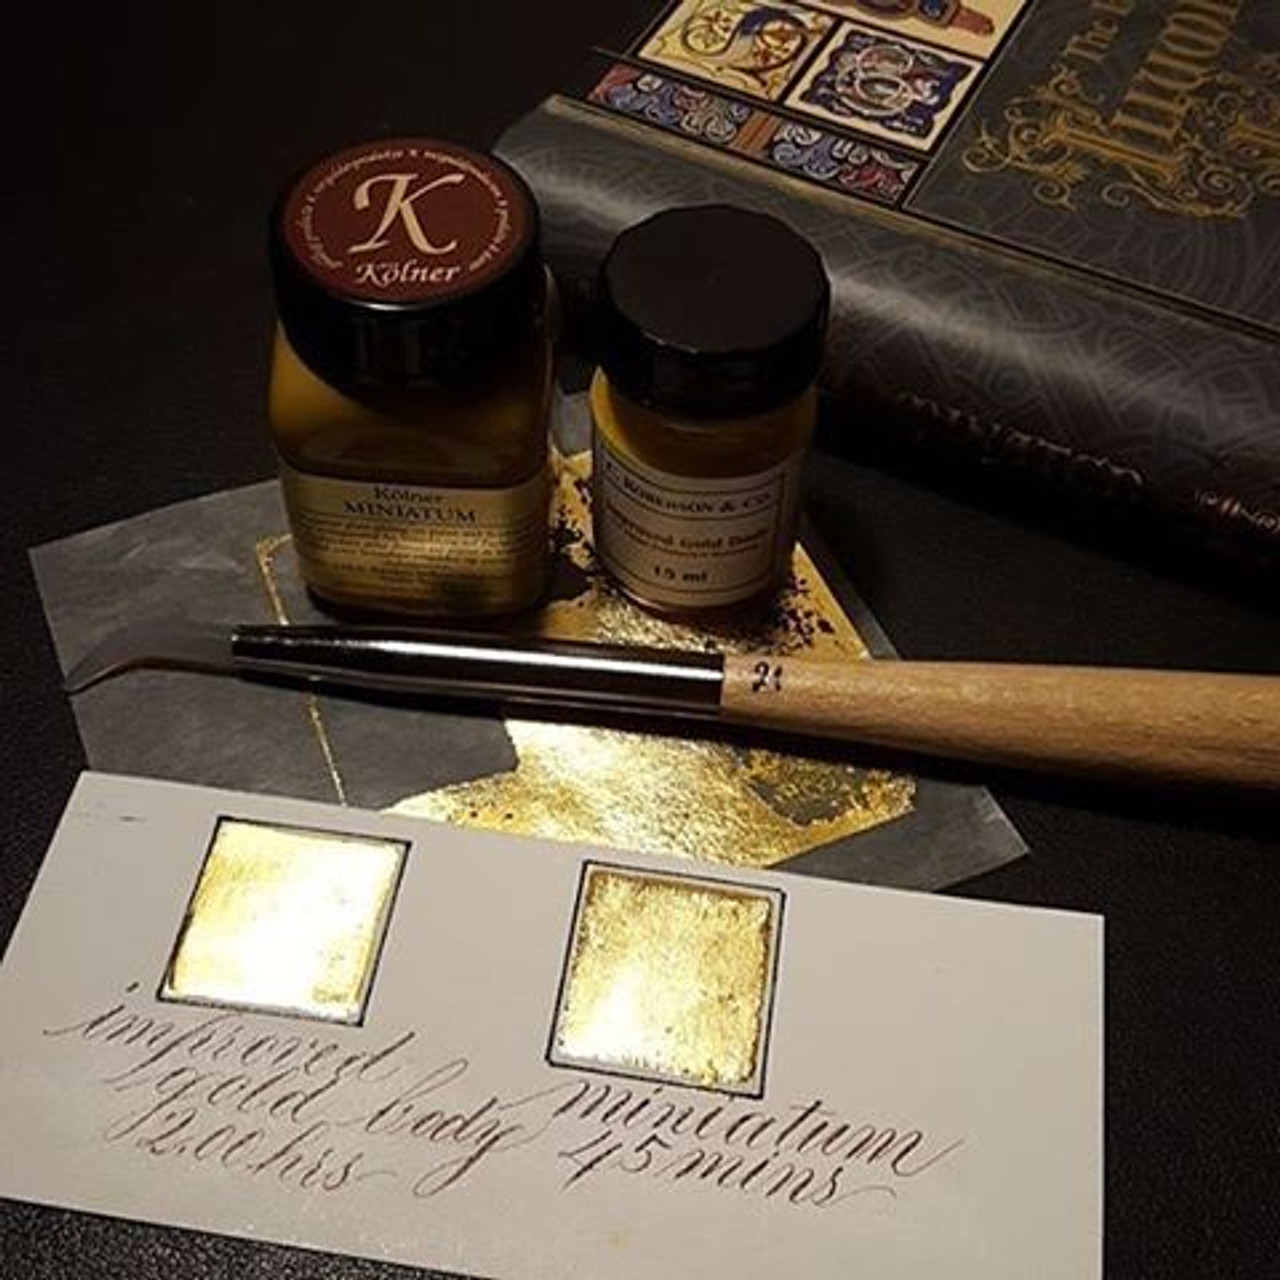 Kolner Miniatum Gold Size Clear for Mirror Gloss Gilding on Paper 50ml